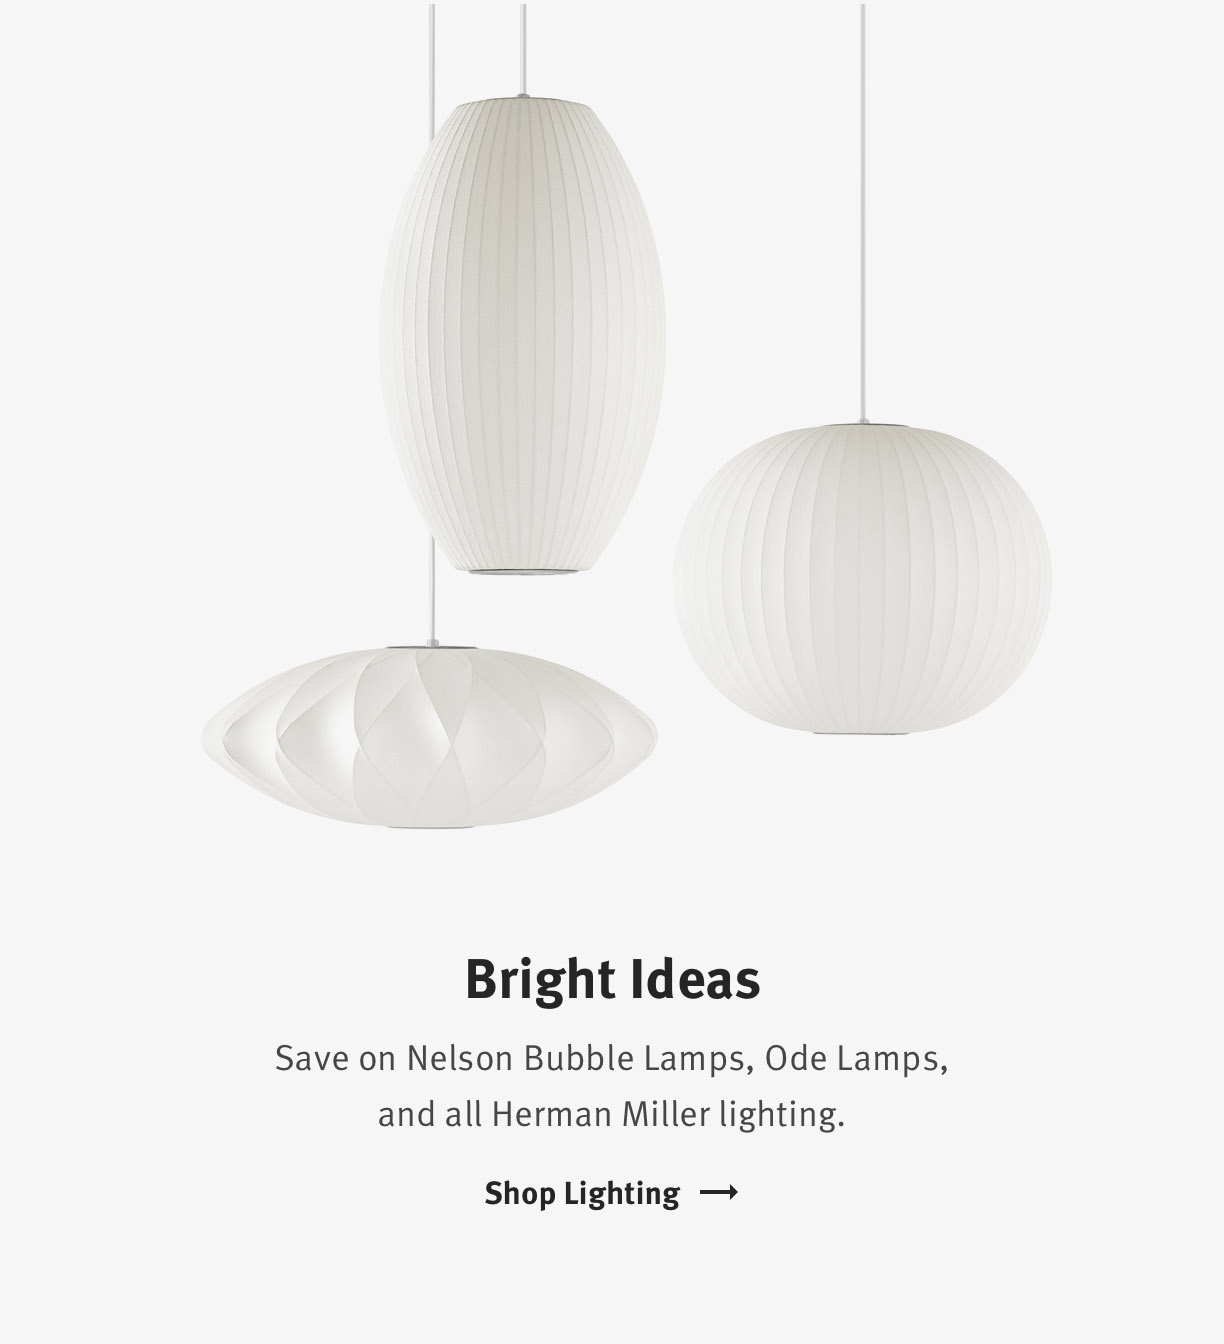 Save on Nelson Bubble Lamps, Ode Lamps, and all Herman Miller lighting.  Shop Lighting